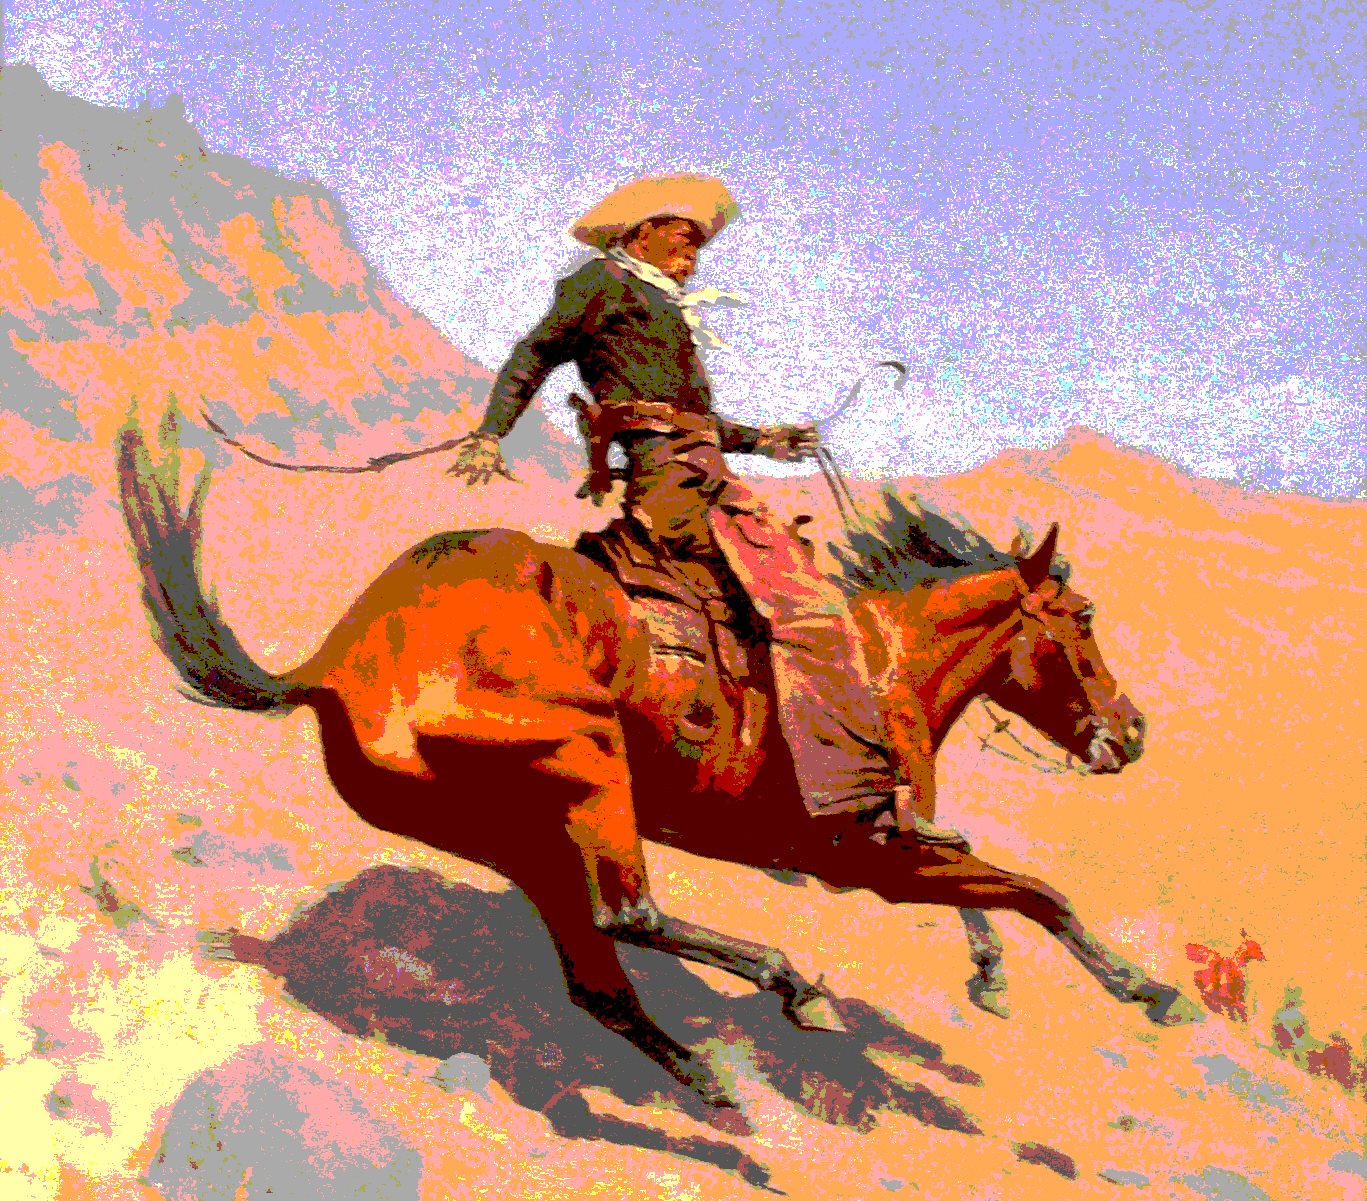 Image altered from: Frederic Remington,  The Cowboy.  1902